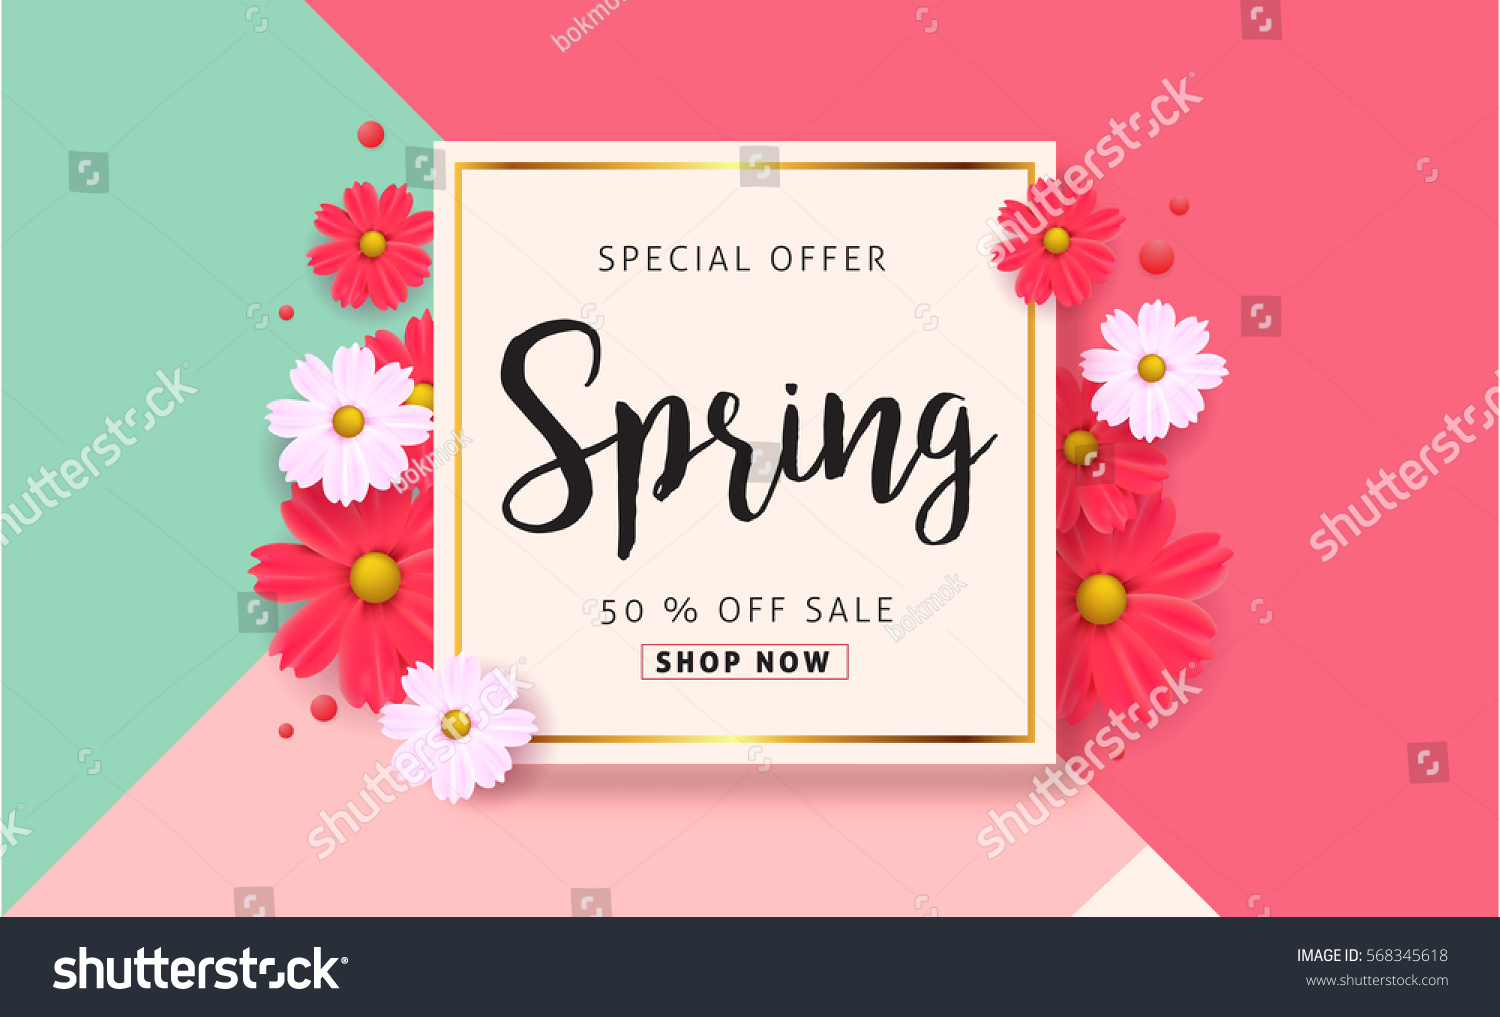 Spring sale background with beautiful colorful flower. Vector illustration template.banners.Wallpaper.flyers, invitation, posters, brochure, voucher discount. #568345618